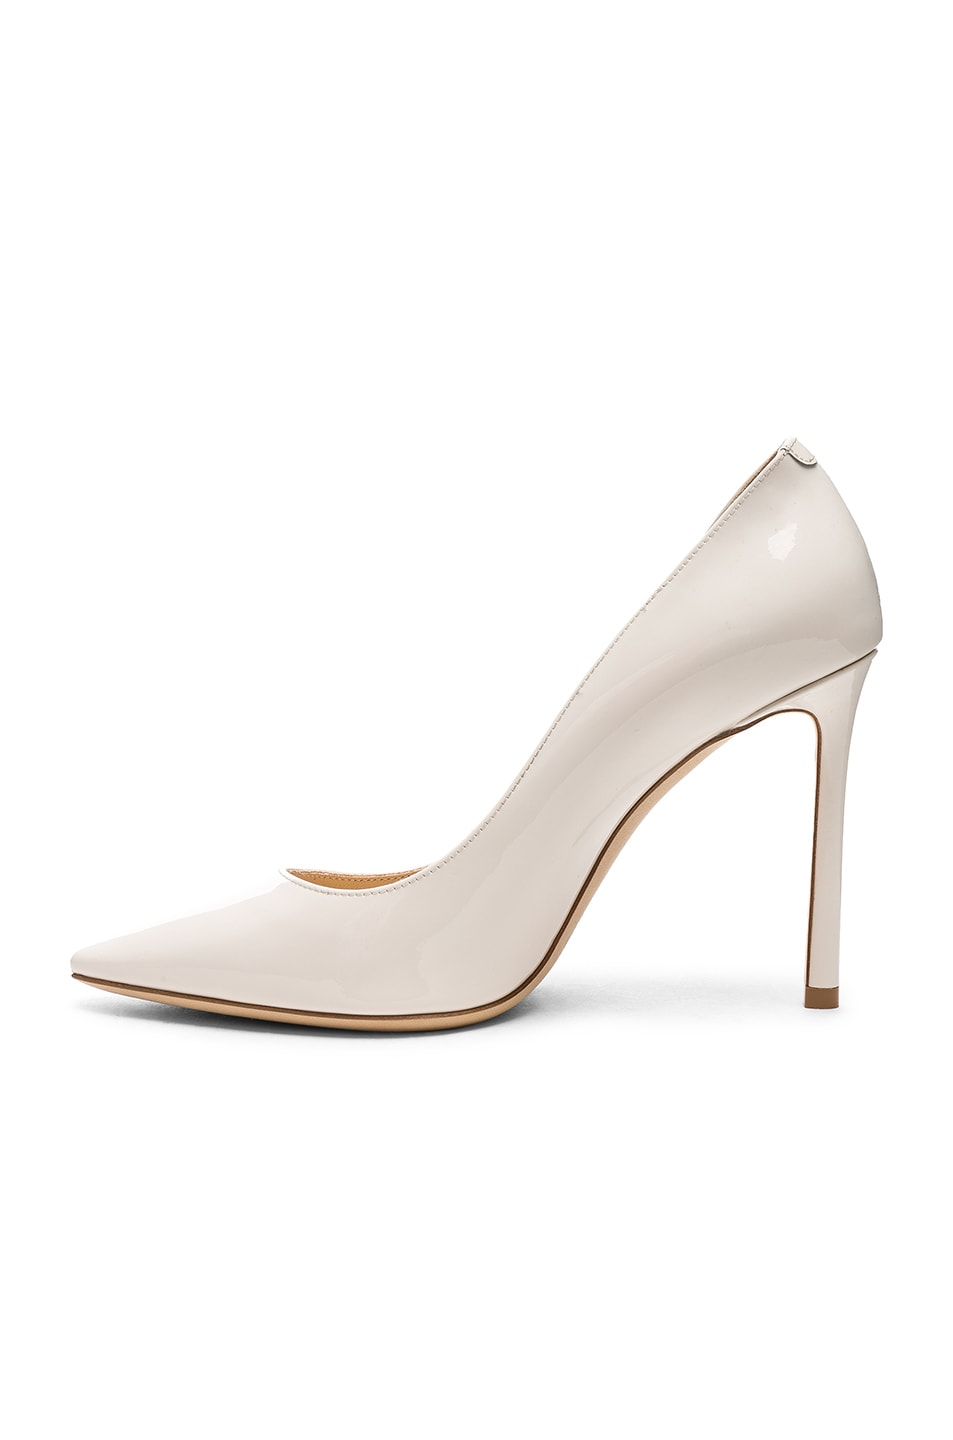 Image 5 of Jimmy Choo Romy 100 Patent Leather Heels in Chalk